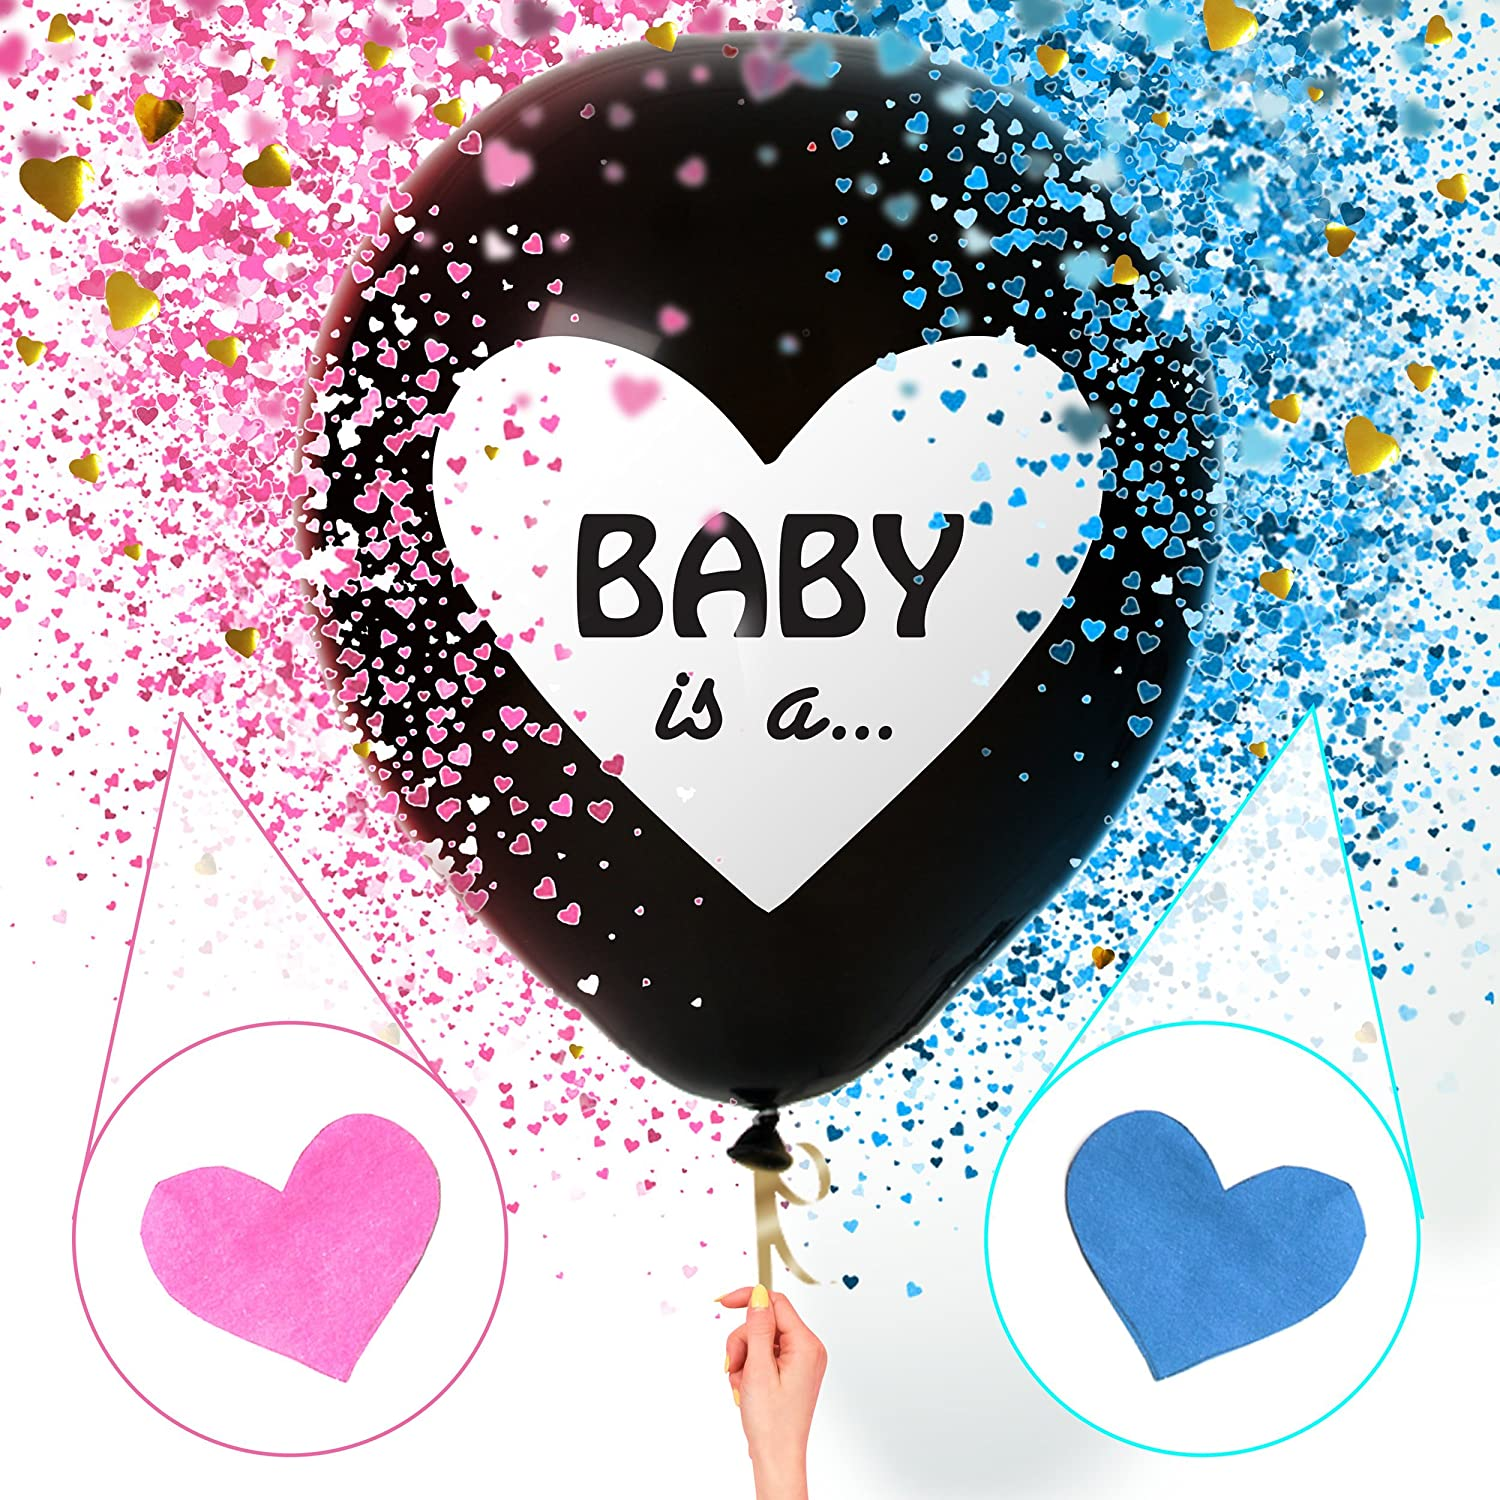 Sweet Baby Co. Jumbo 36 Inch Baby Gender Reveal Balloon | Big Black Balloons with Pink and Blue Heart Shape Confetti Packs for Boy or Girl | Baby Shower Gender Reveal Party Supplies Decoration Kit Ten Essentials